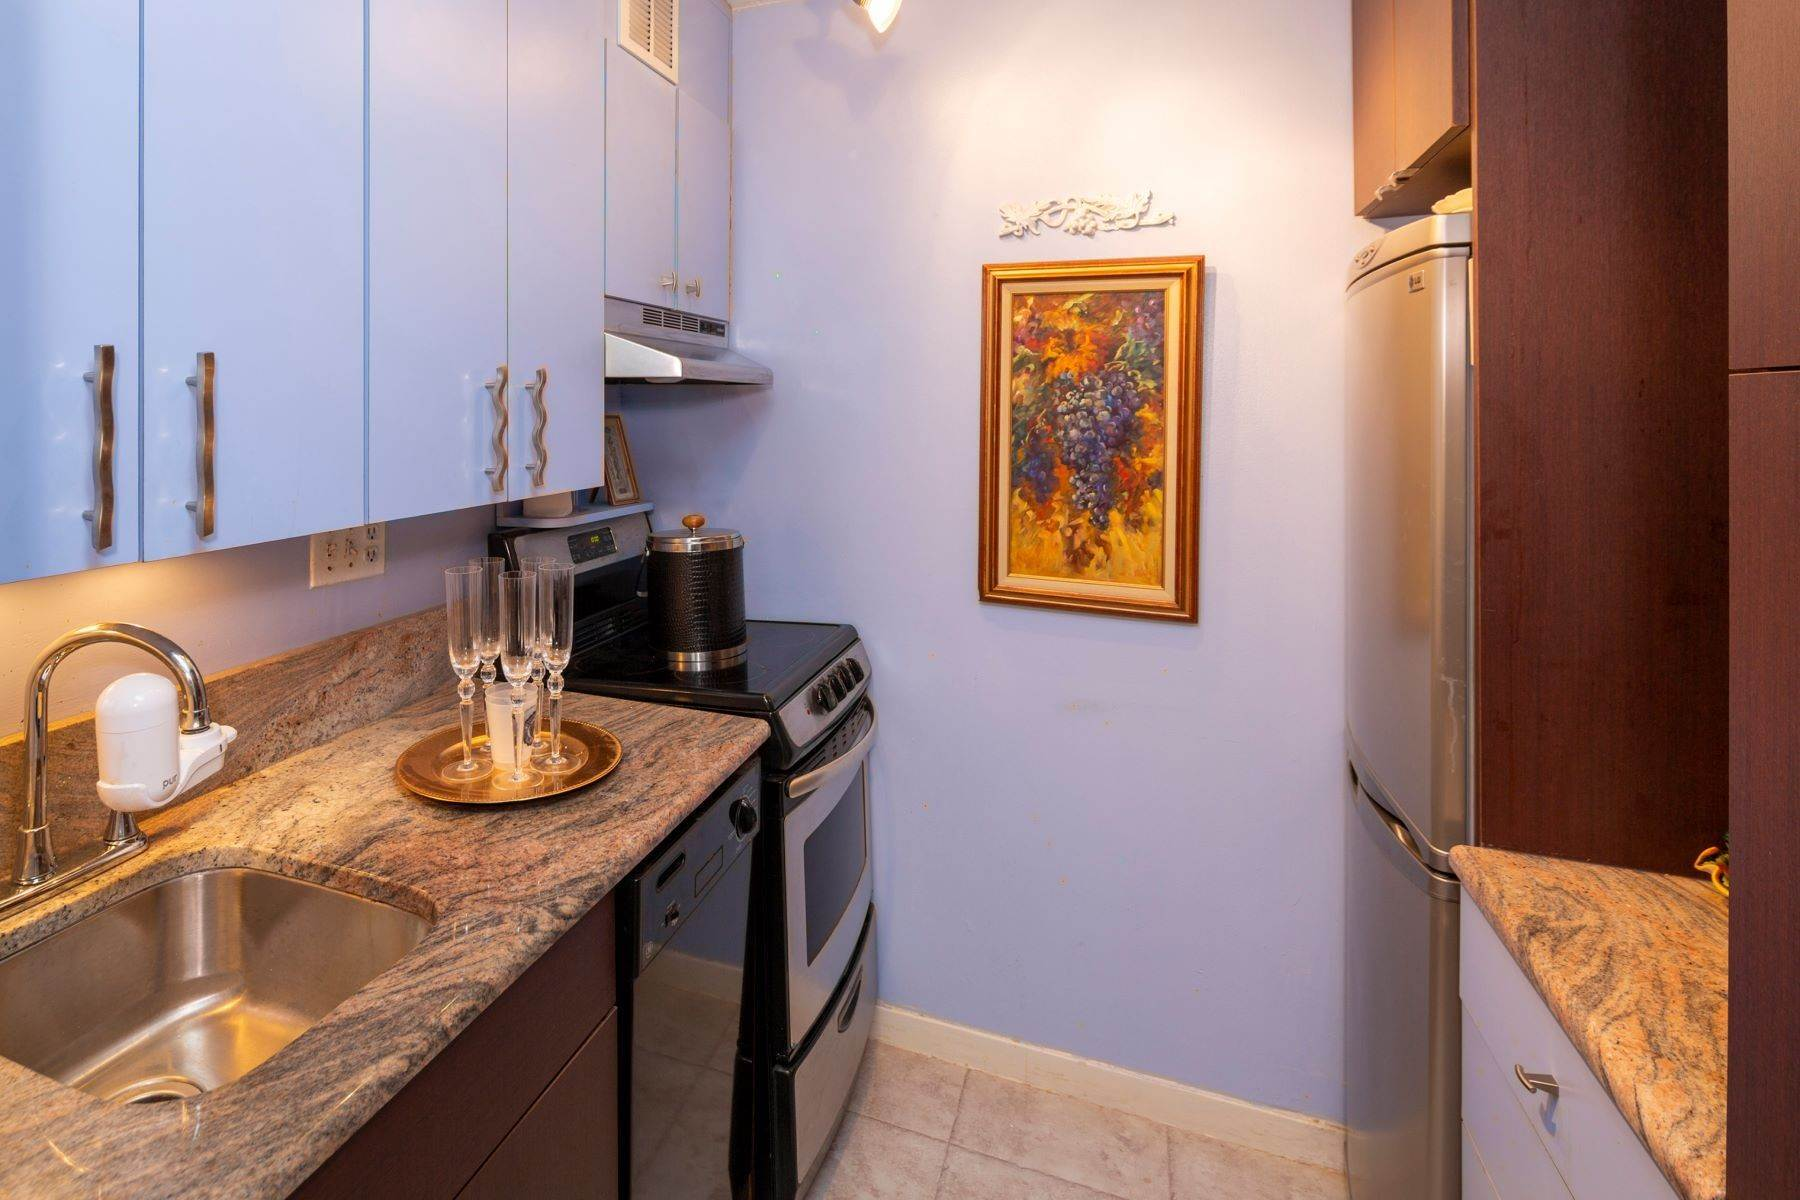 19. Apartments for Sale at 224-226 W RITTENHOUSE SQ #2001-2, 2001-2 Philadelphia, Pennsylvania 19103 United States